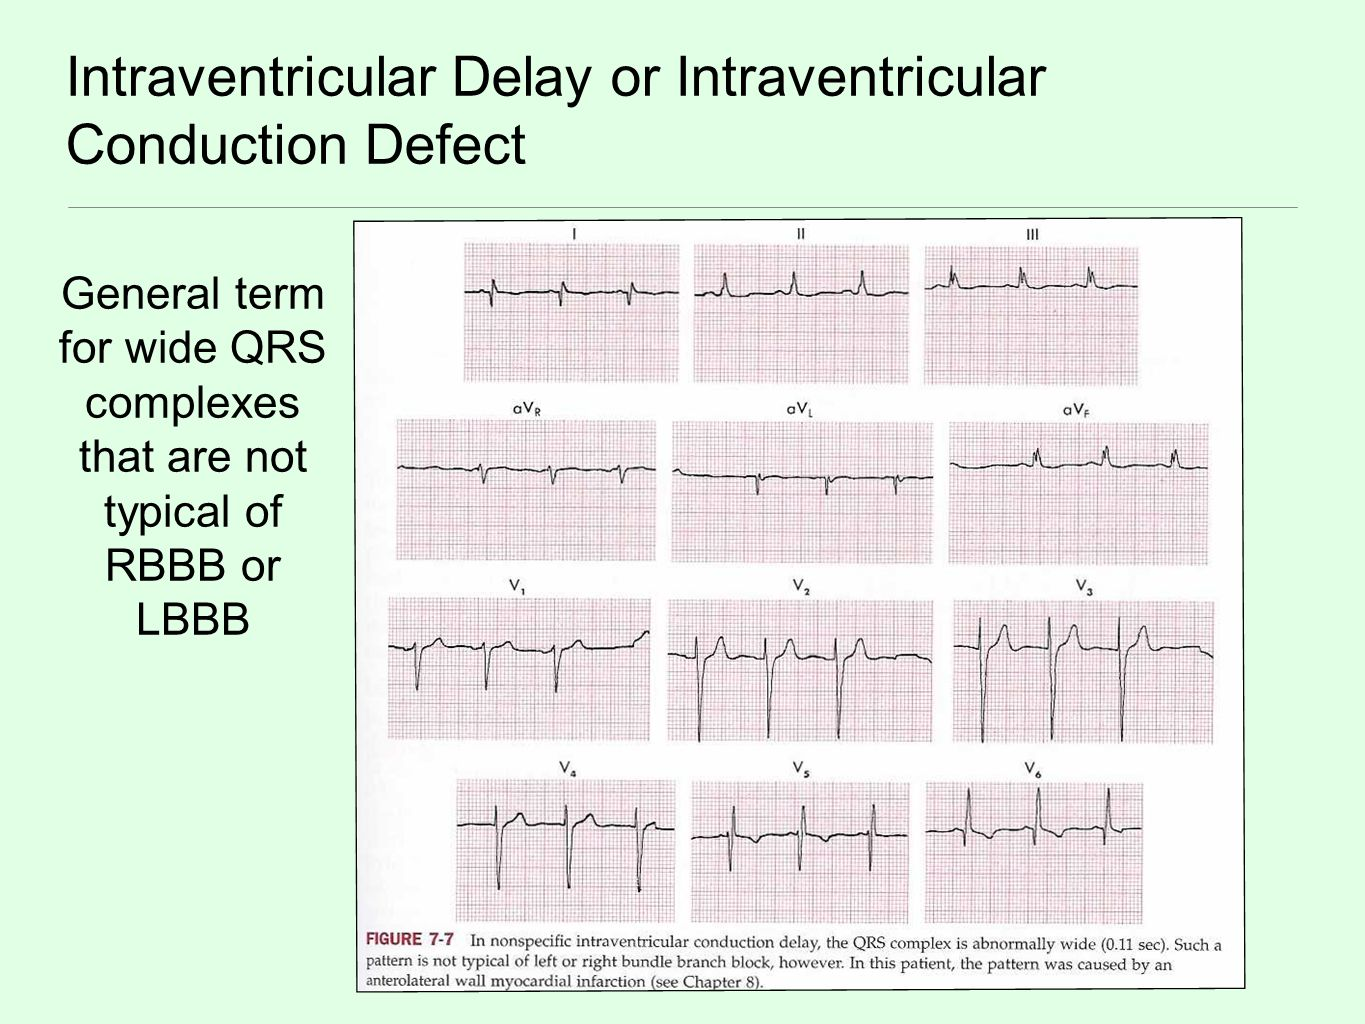 Intraventricular Delay or Intraventricular Conduction Defect